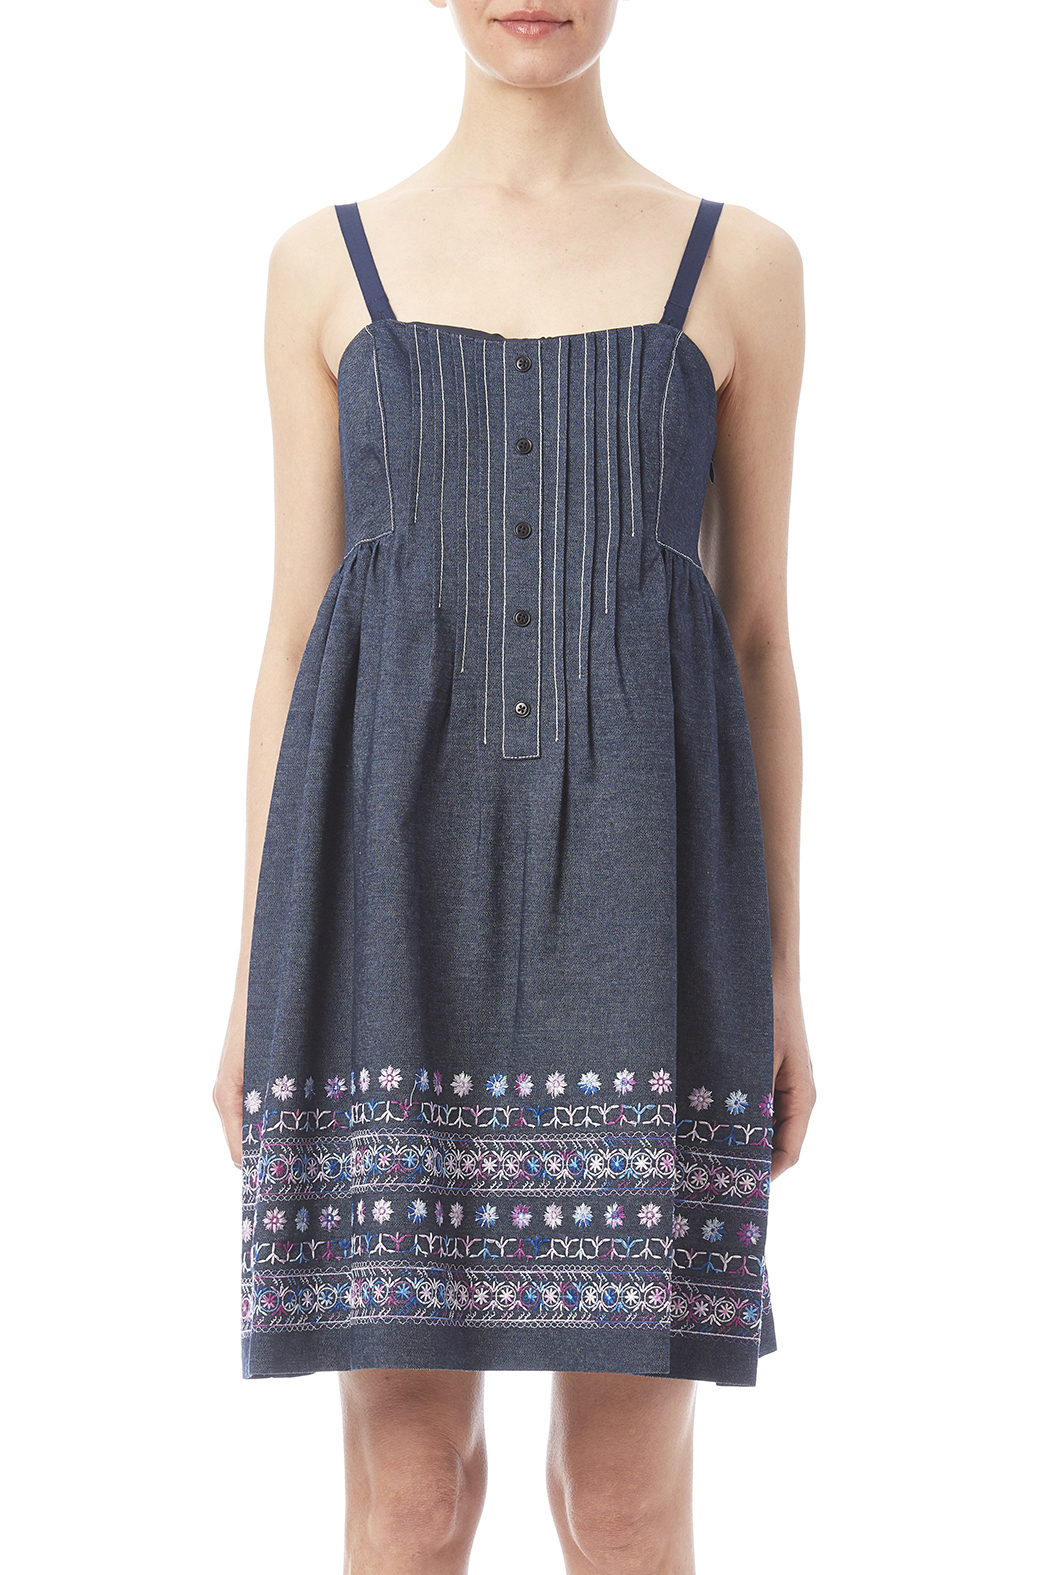 Anna sui embroidered denim dress from manhattan — shoptiques